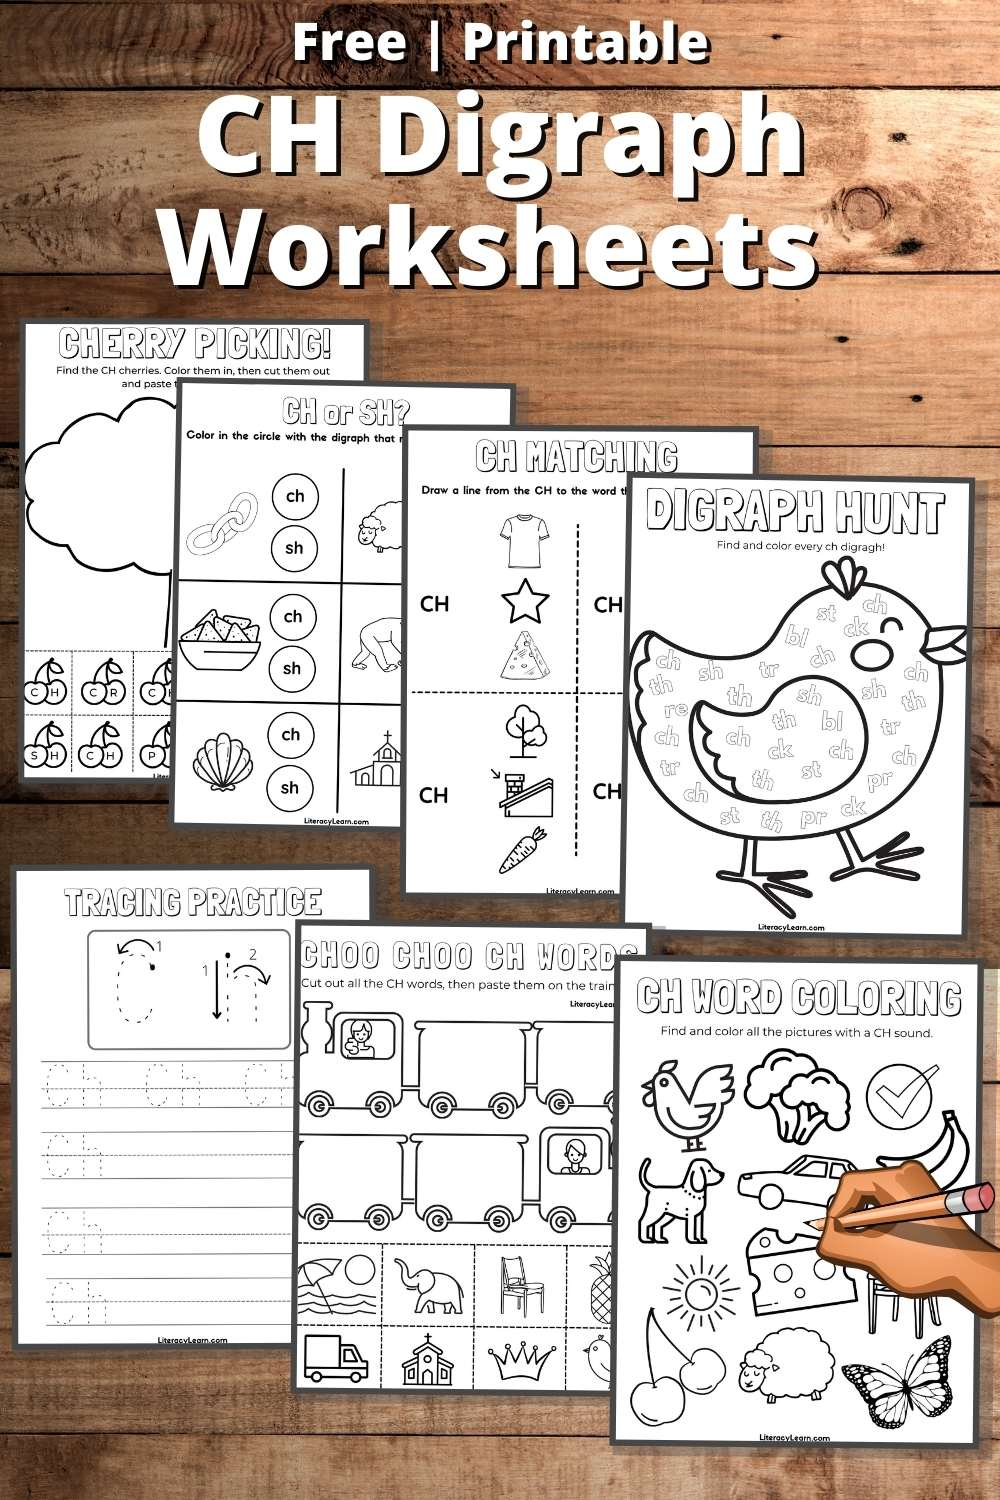 """Graphic with all the worksheets displayed on a wooden background with the words """"Free Printable CH Digraph Worksheets."""""""